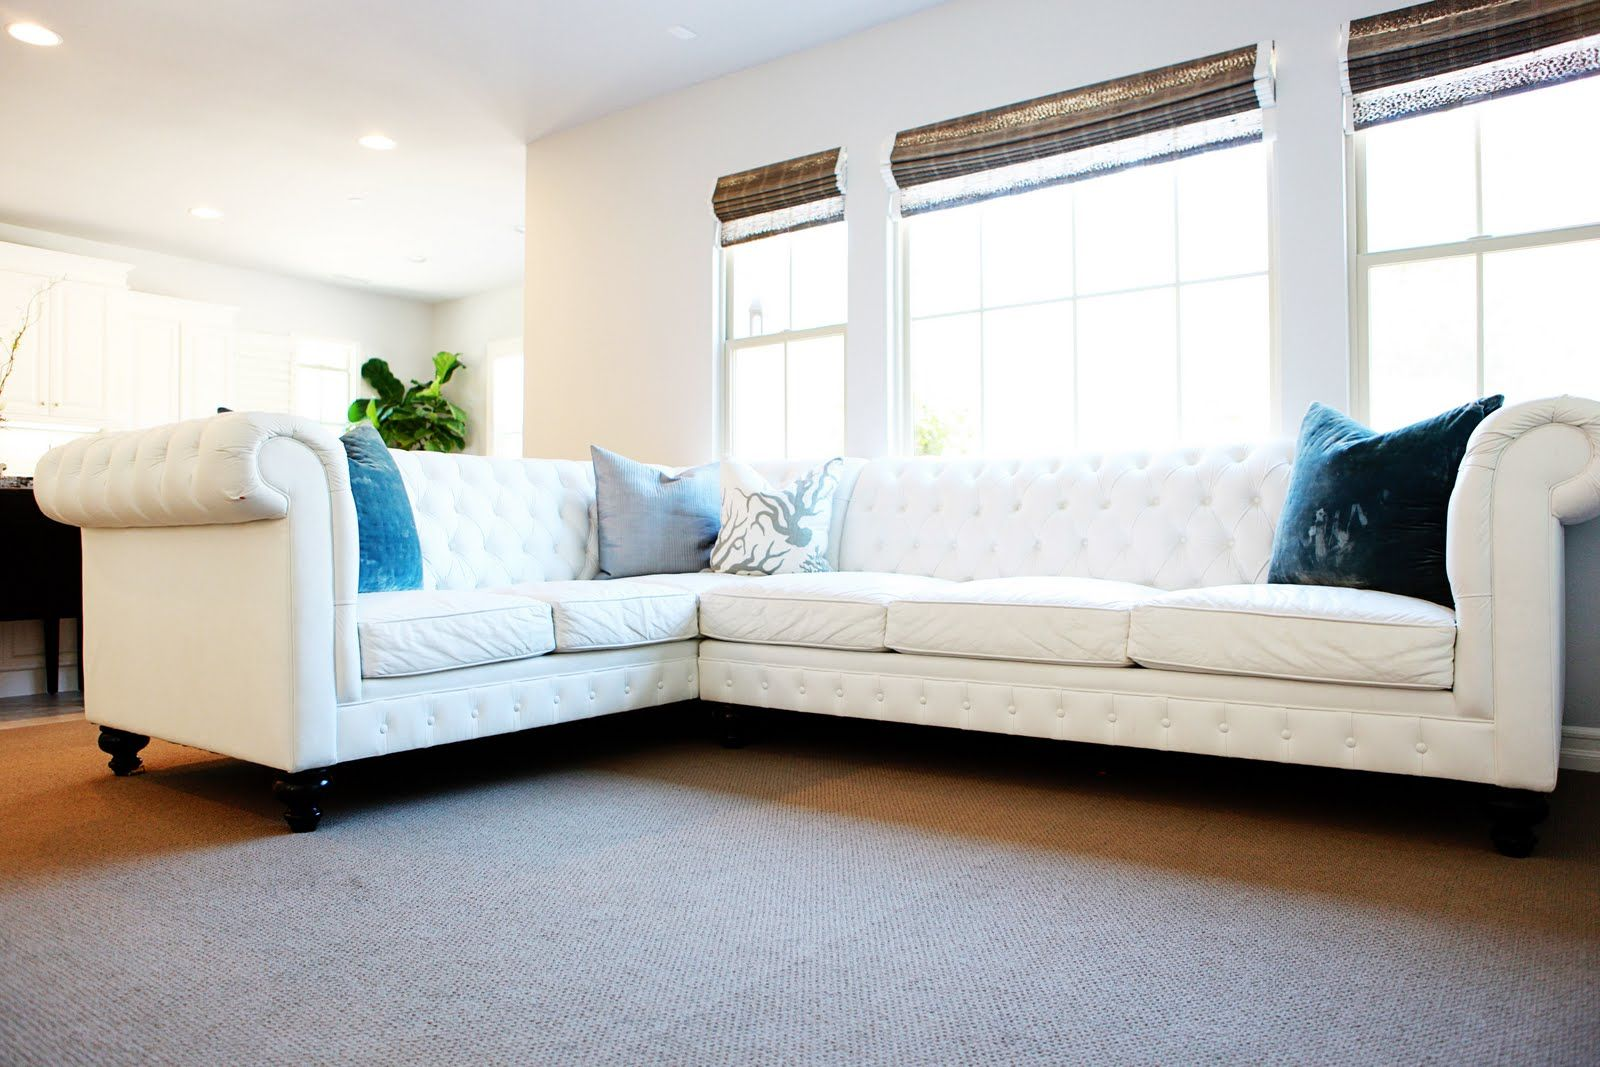 Always Swell Tgif White Out Living Room Decor White Leather